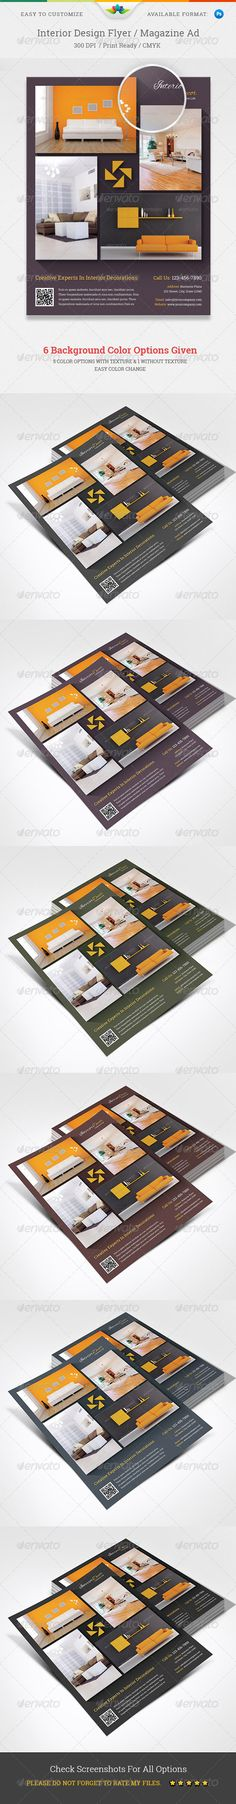 Interior Design Flyer / Magazine Ad — Photoshop PSD #luxurious #corporate • Available here → https://graphicriver.net/item/interior-design-flyer-magazine-ad-/5456672?ref=pxcr